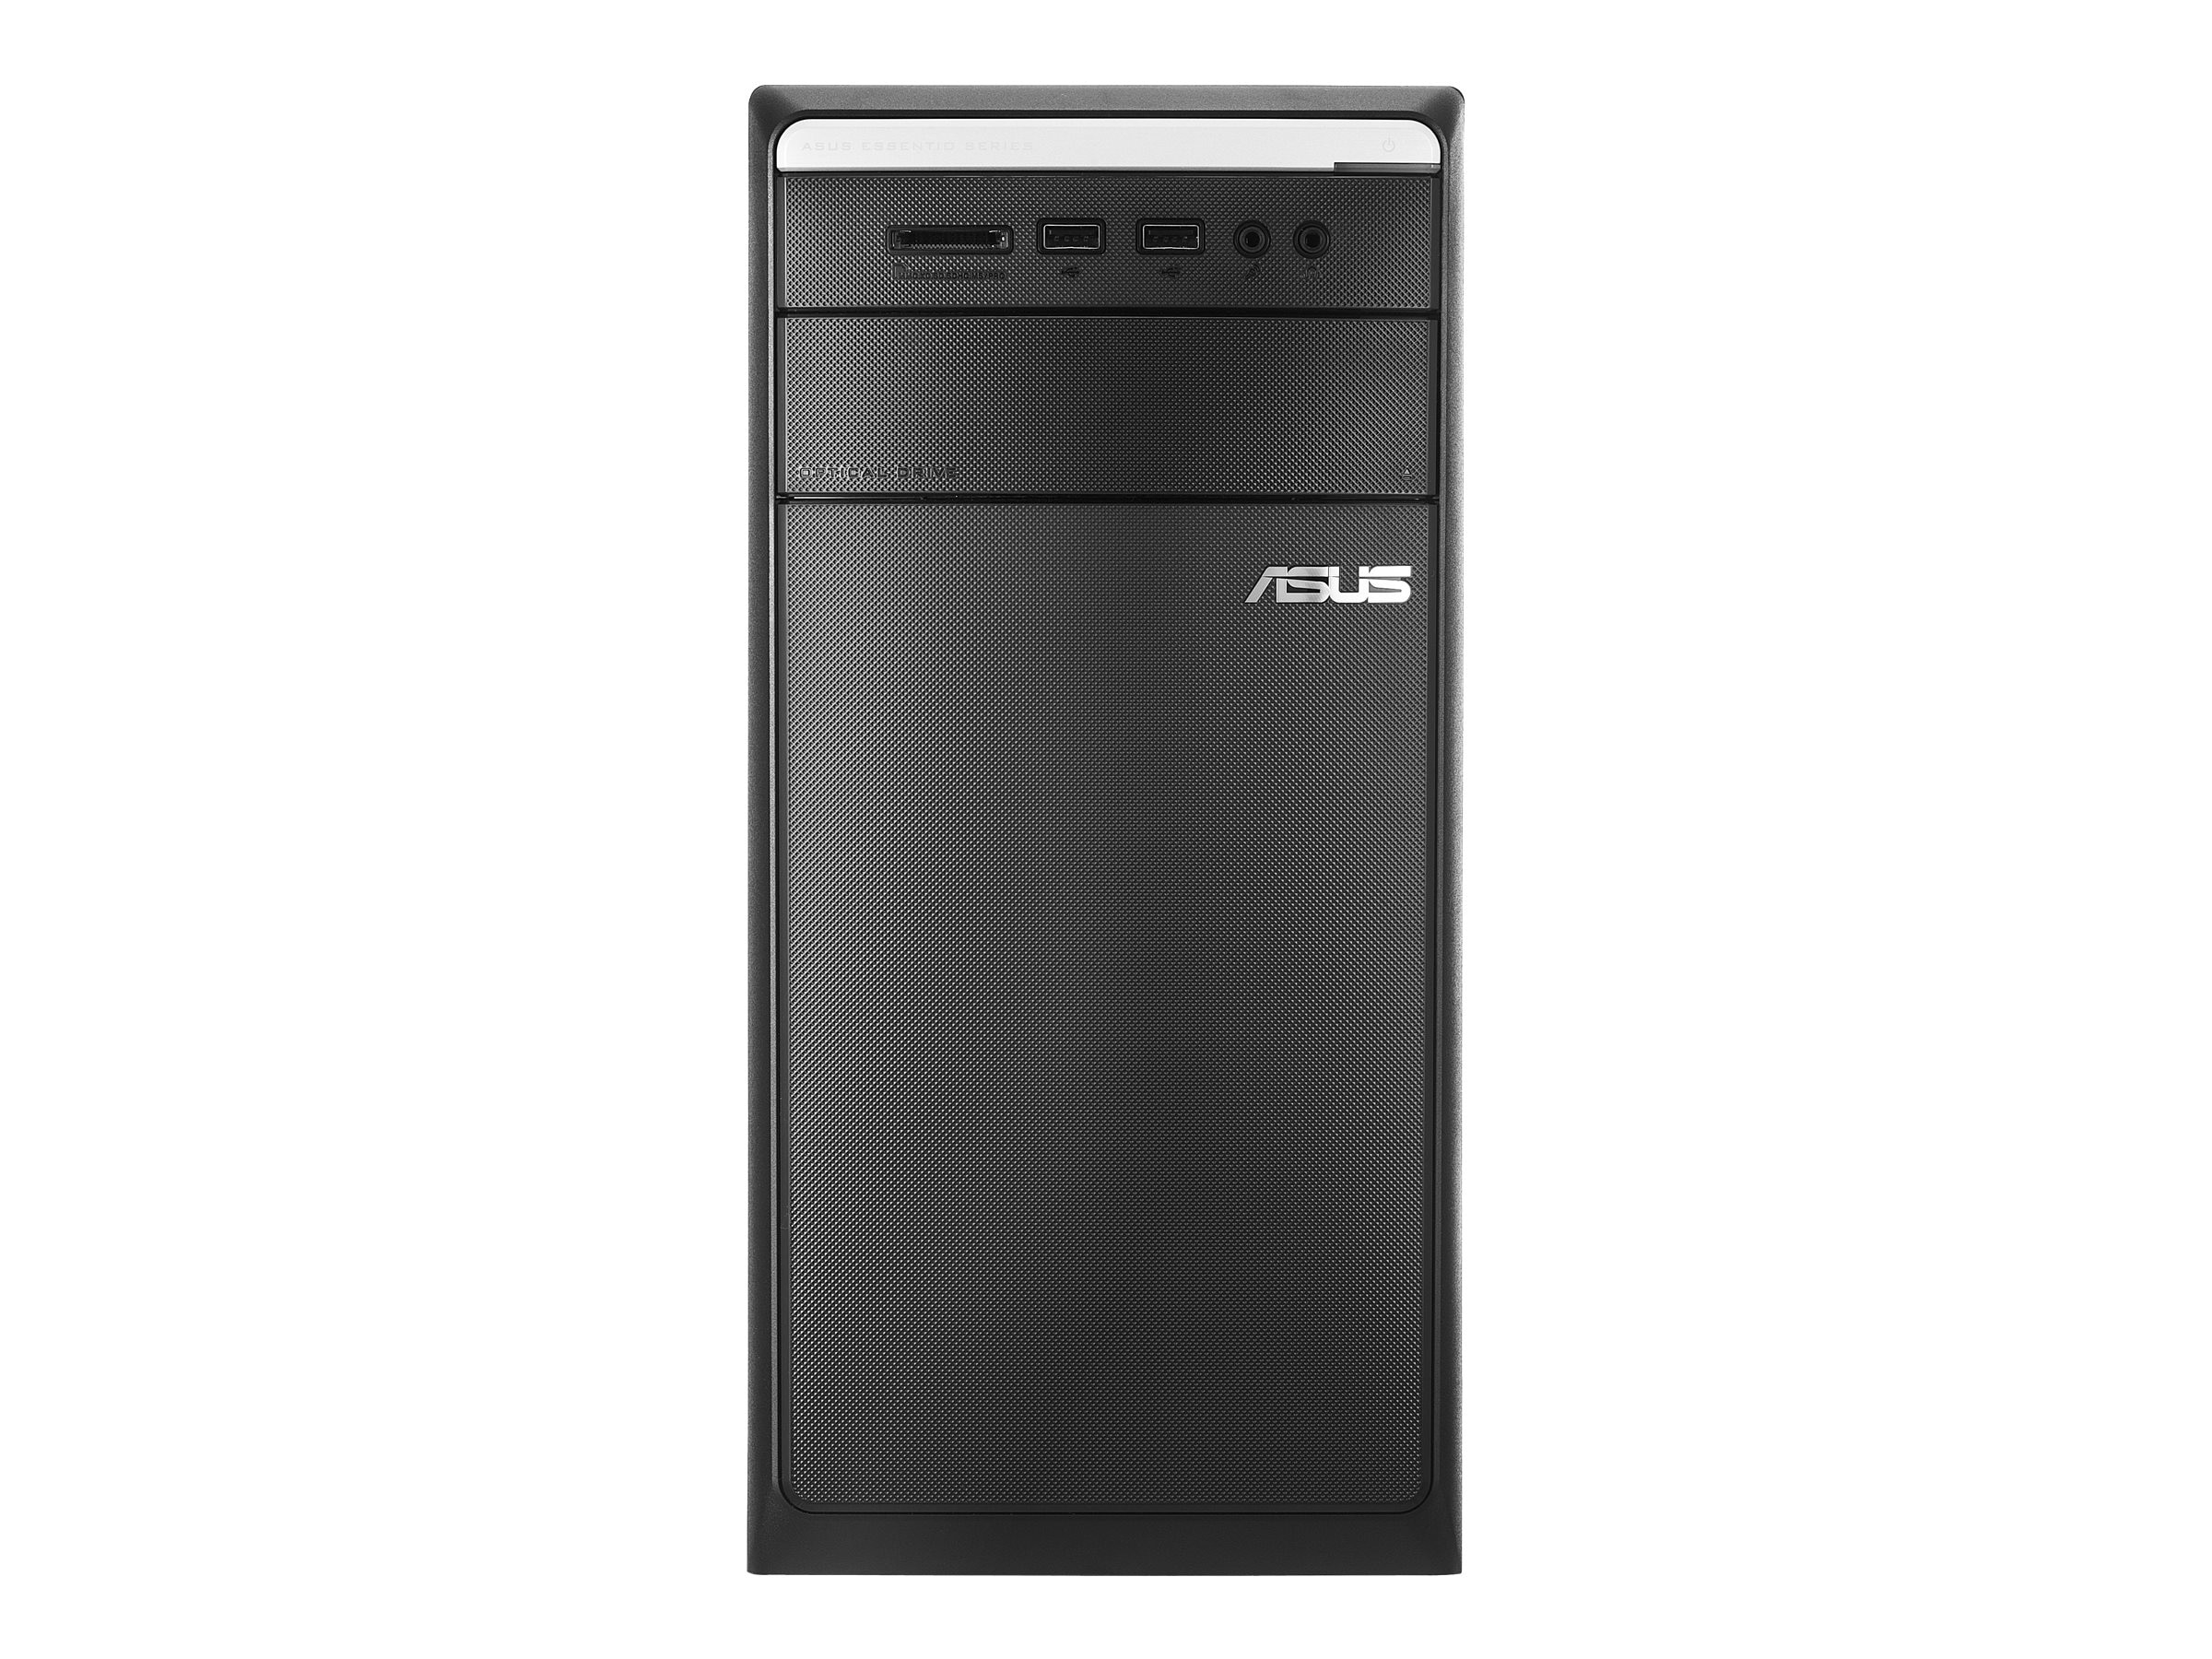 Asus Desktop PC A6-6400K W8, M11BB-US010S